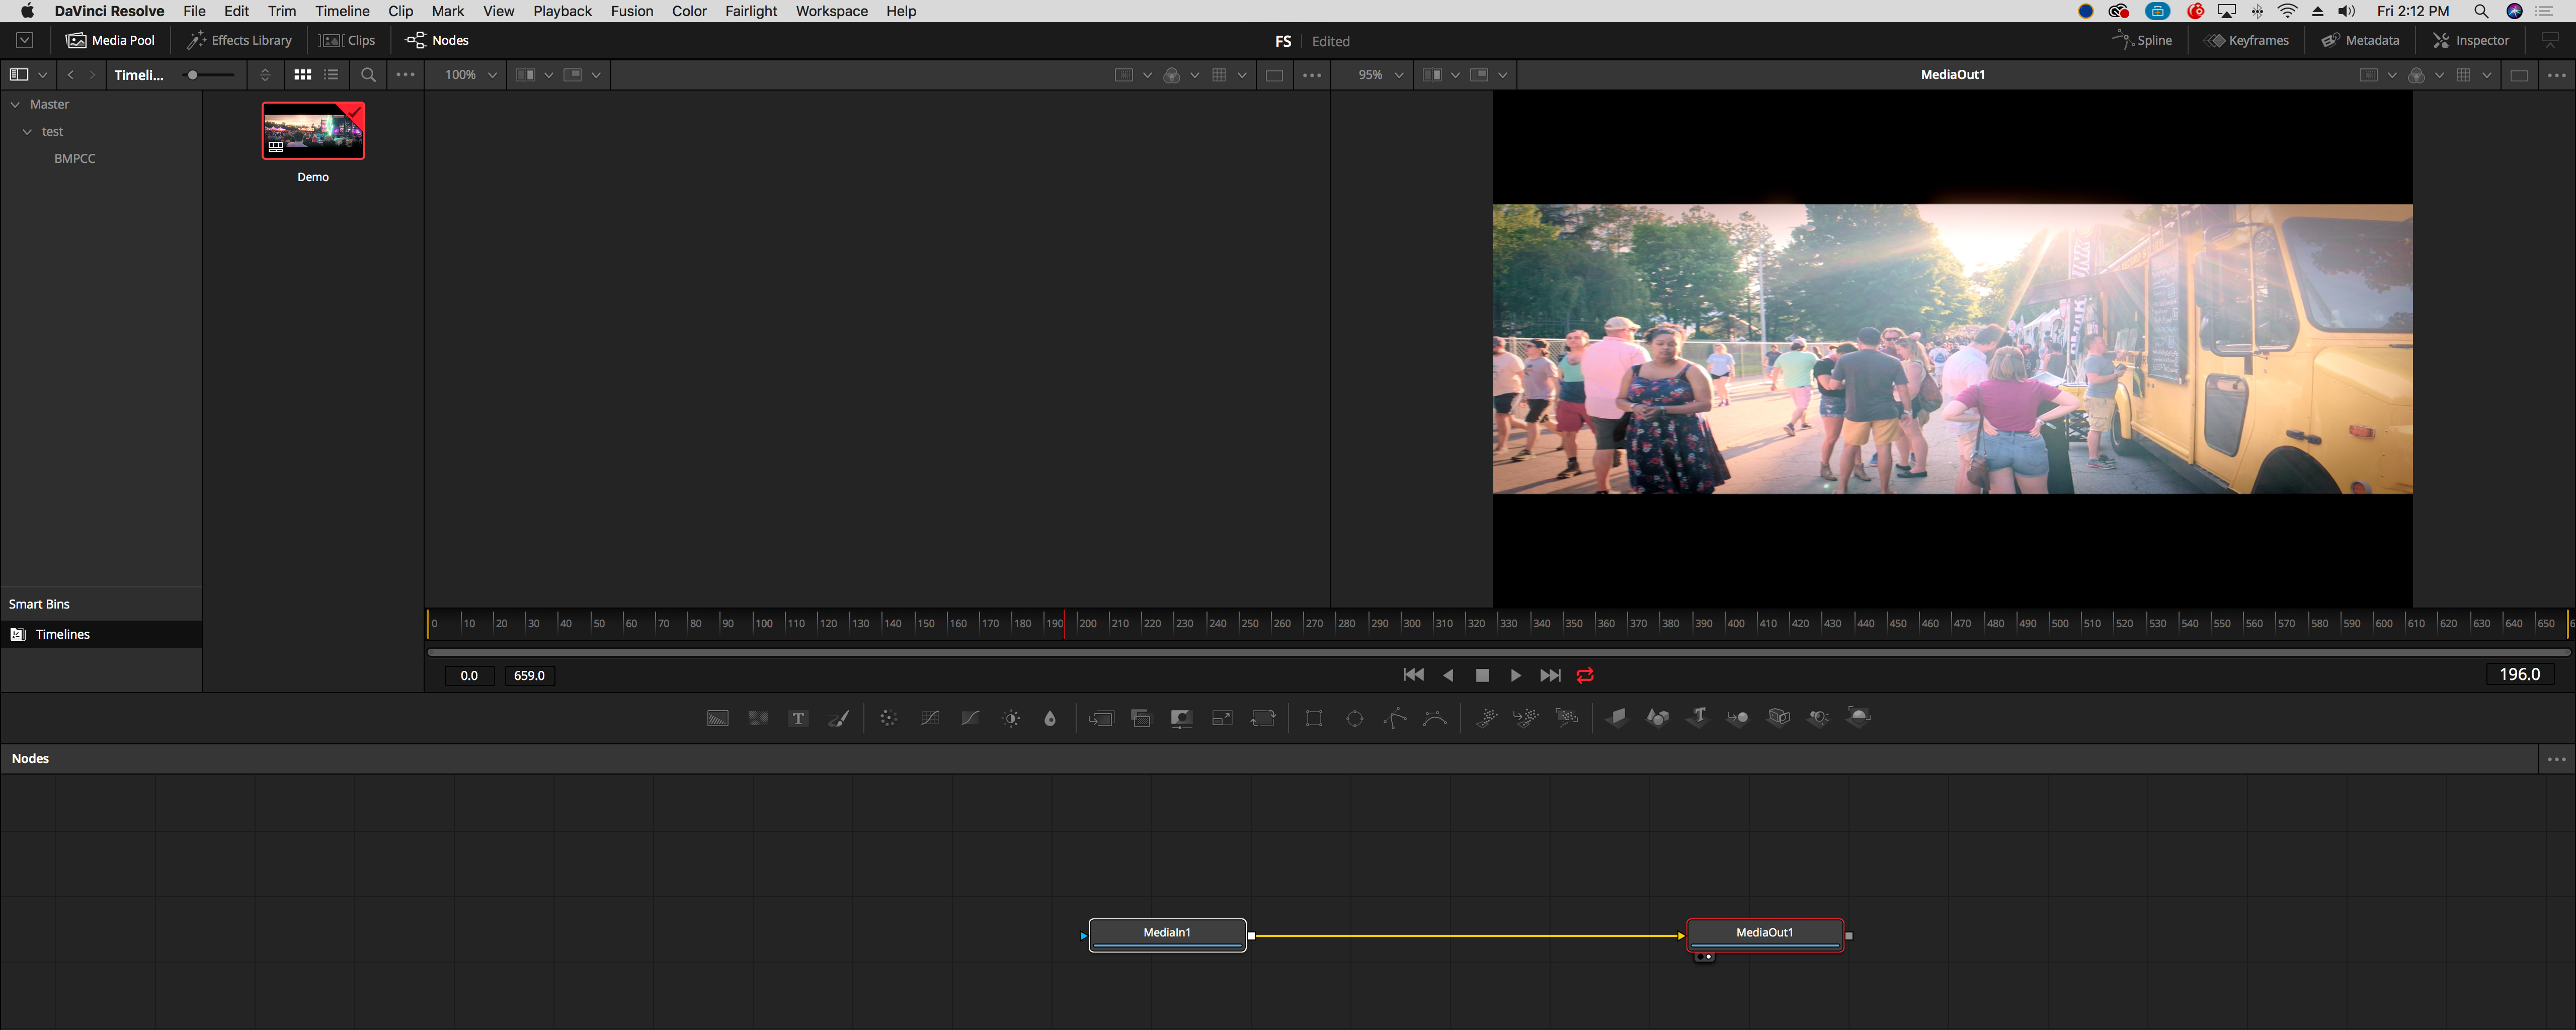 5 DaVinci Resolve Tips for After Effects Users   cinema5D